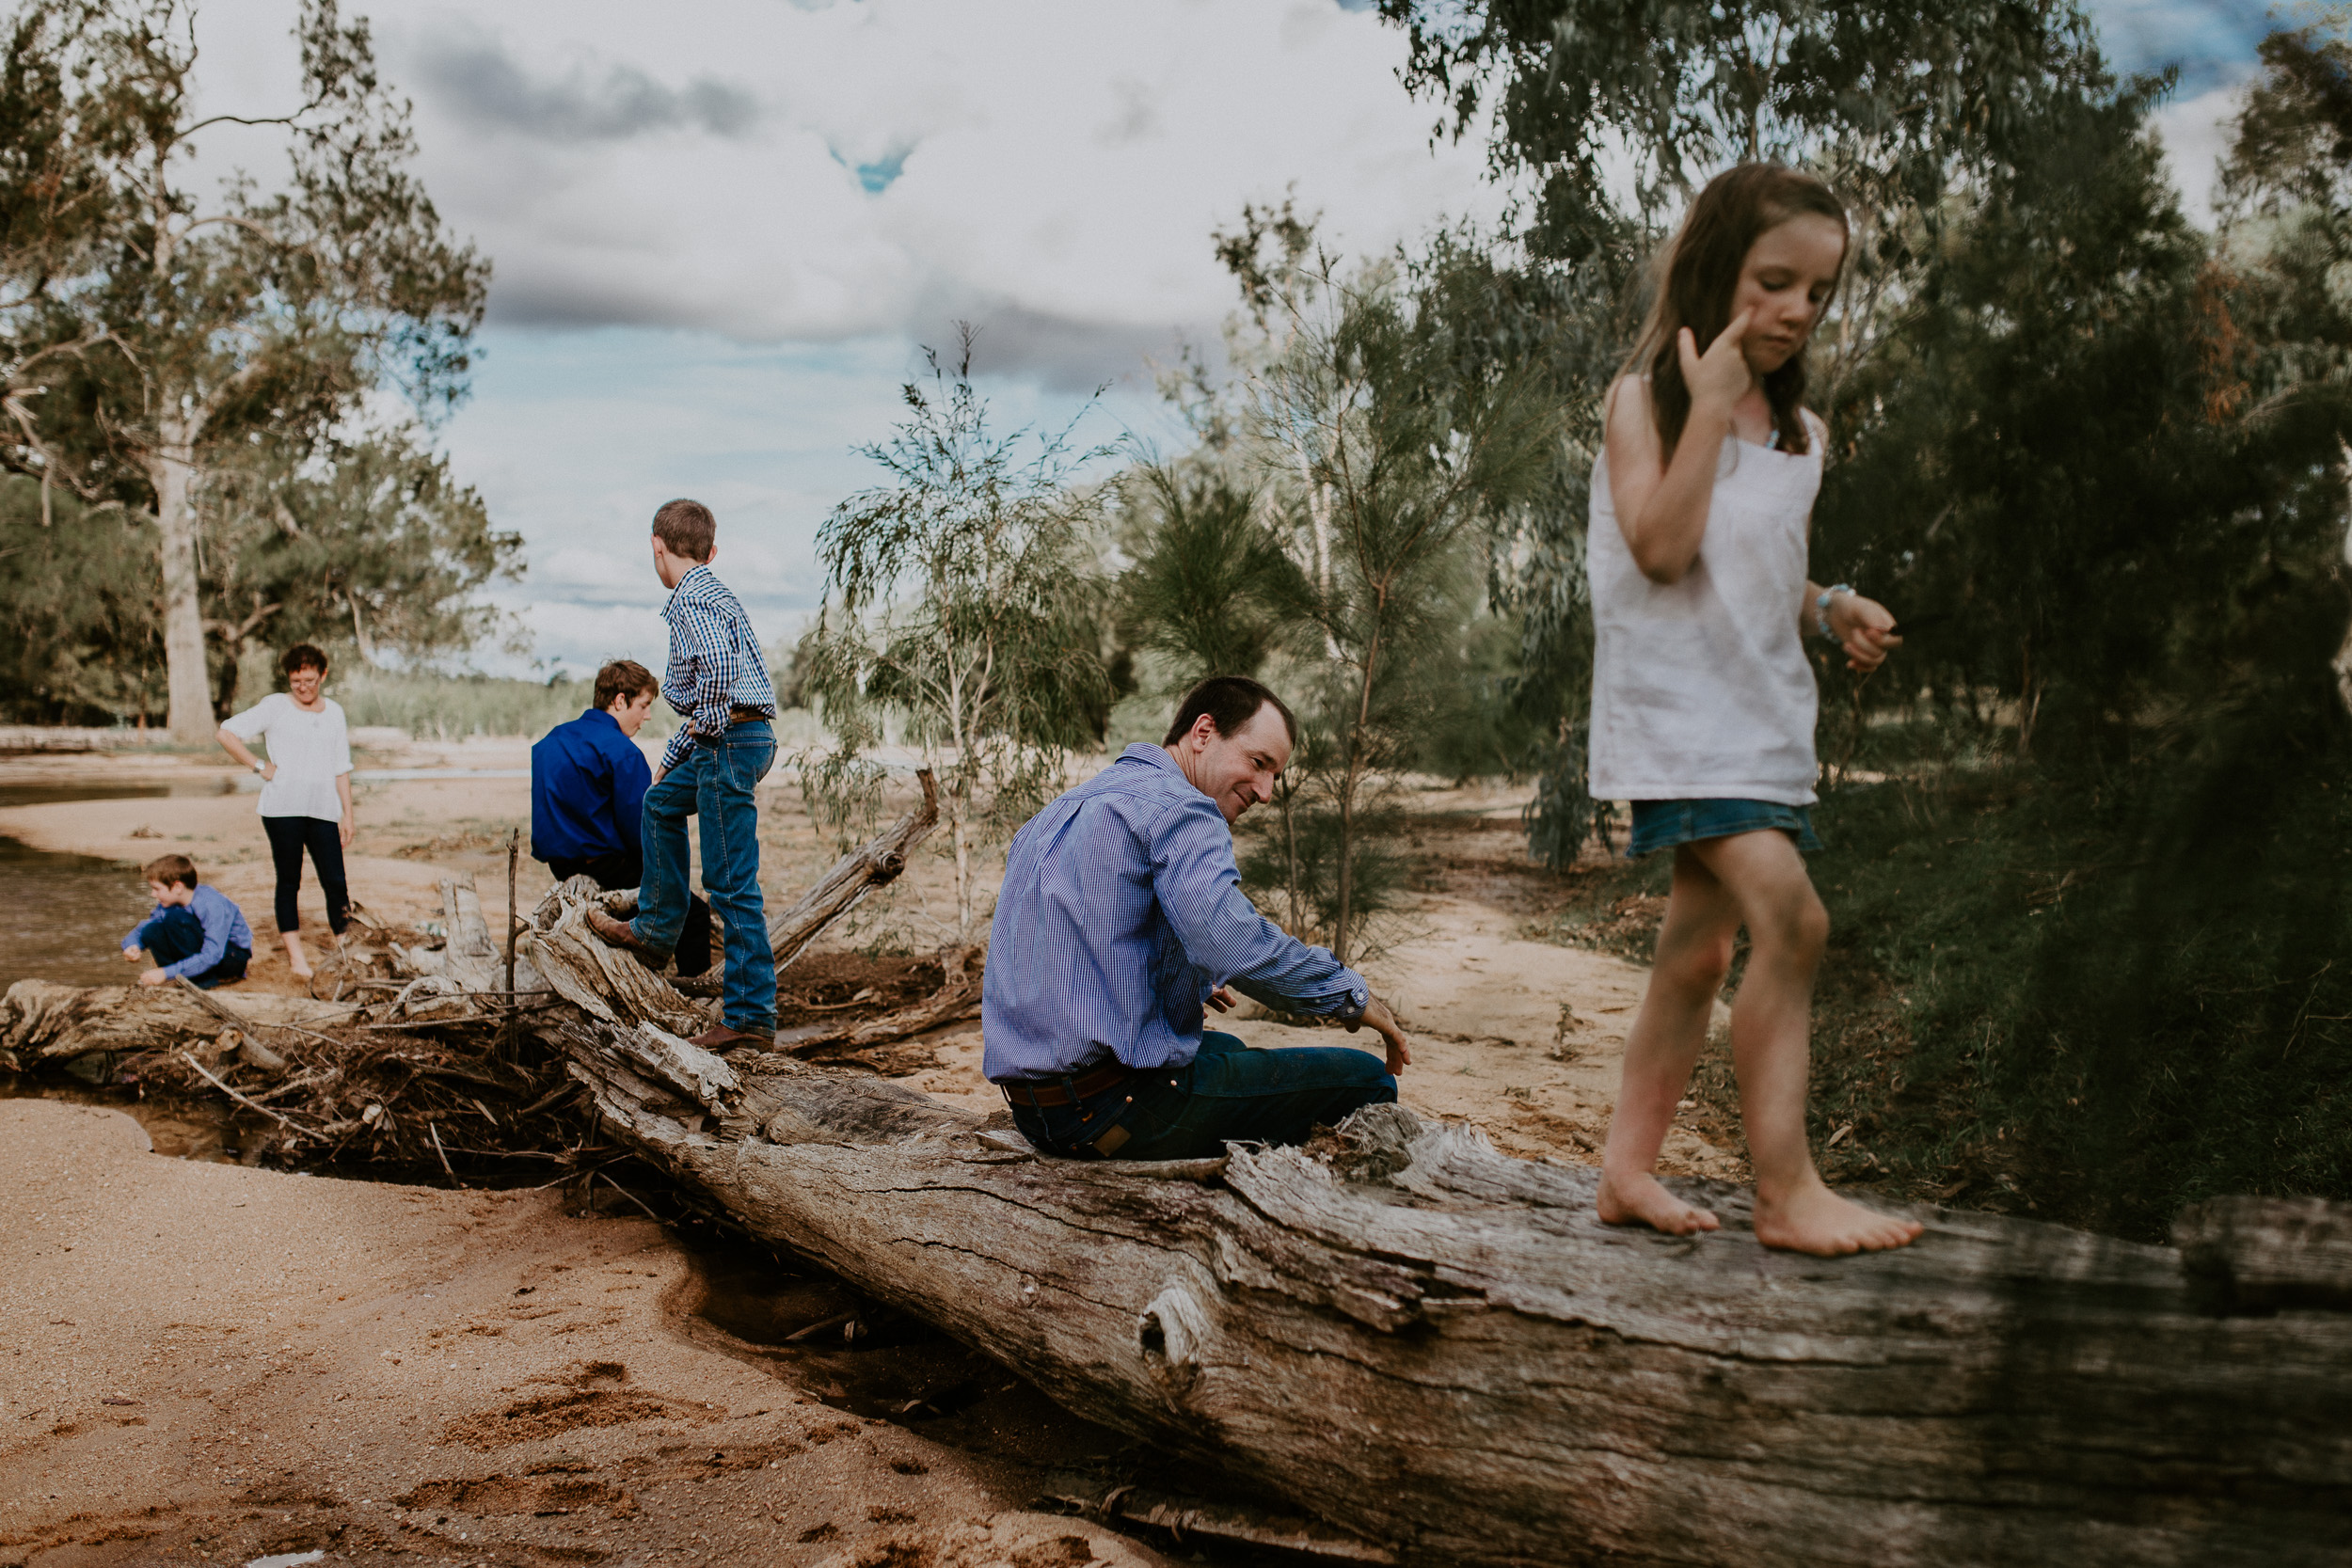 Baby-outdoor-family-lifetsyle-townsville-Cairns-Queensland-family-inhome-outdoors-candid-natural-bush-relaxed-large-family-colour-river-37.jpg